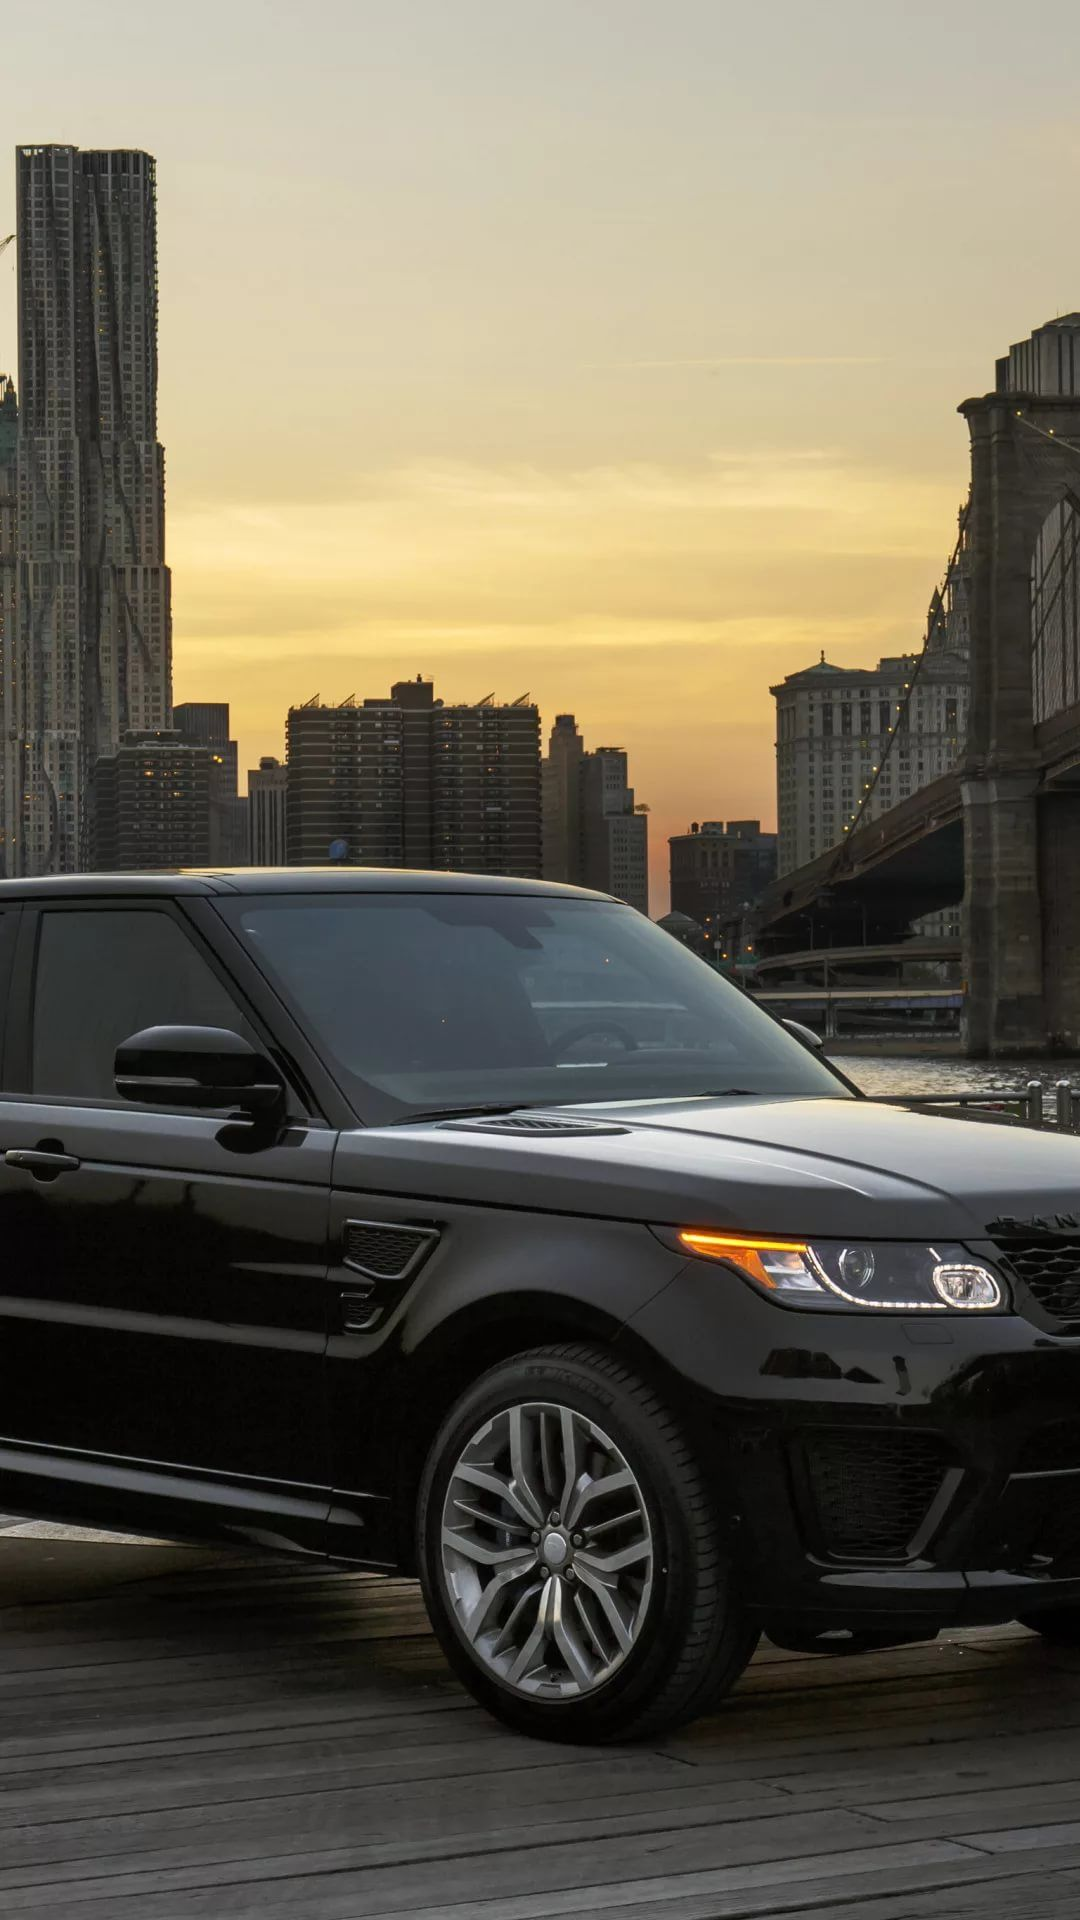 Range Rover Samsung Galaxy s8 wallpaper